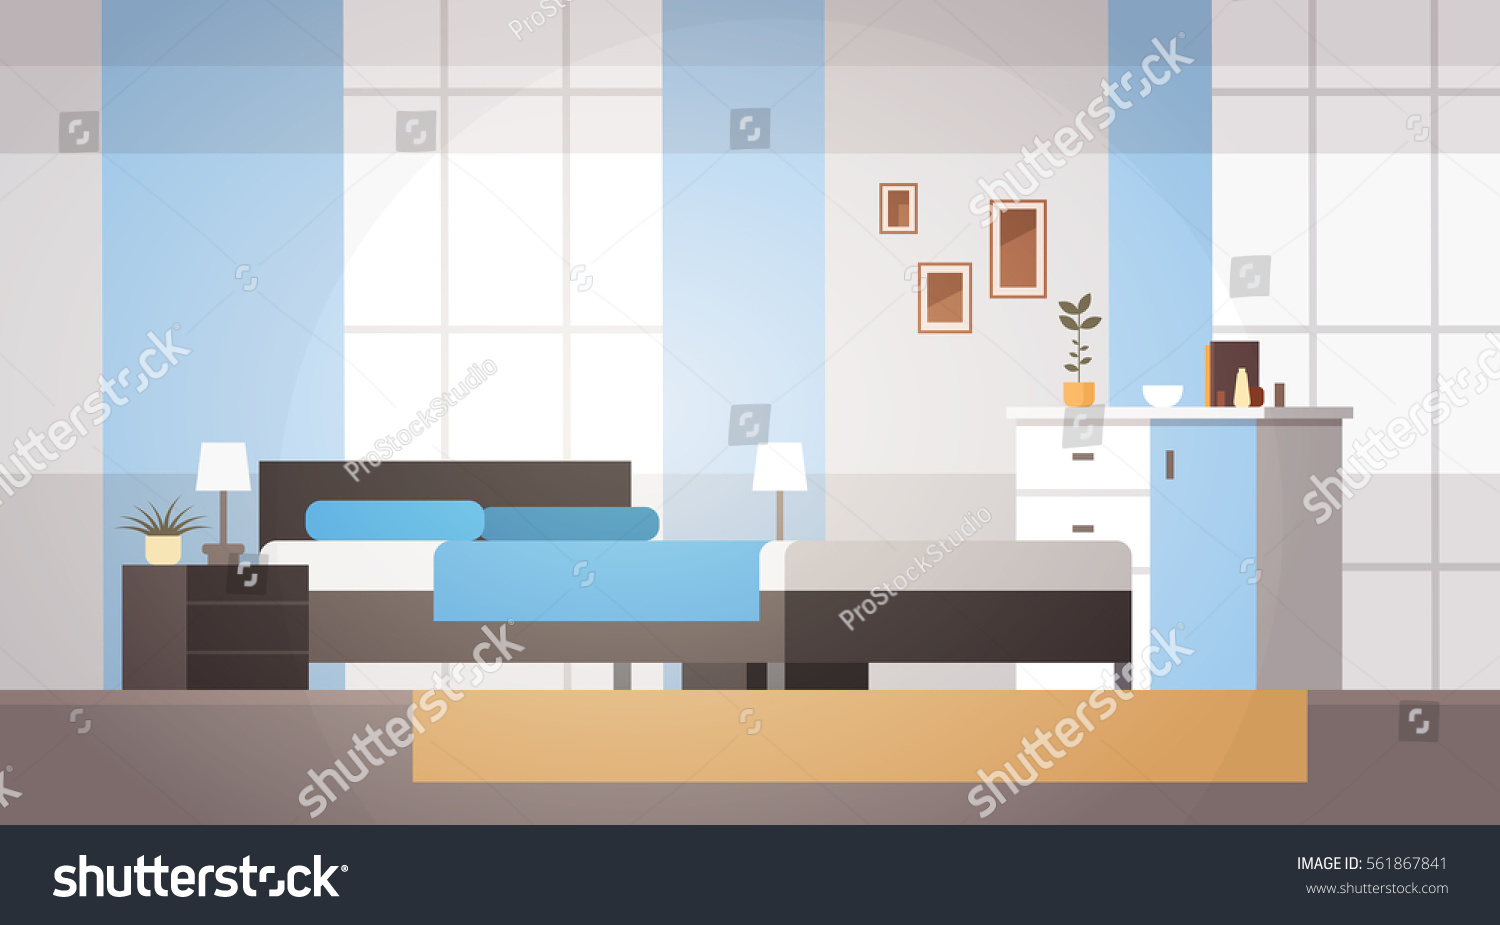 Bedroom interior home modern apartment design stock vector for Apartment design vector